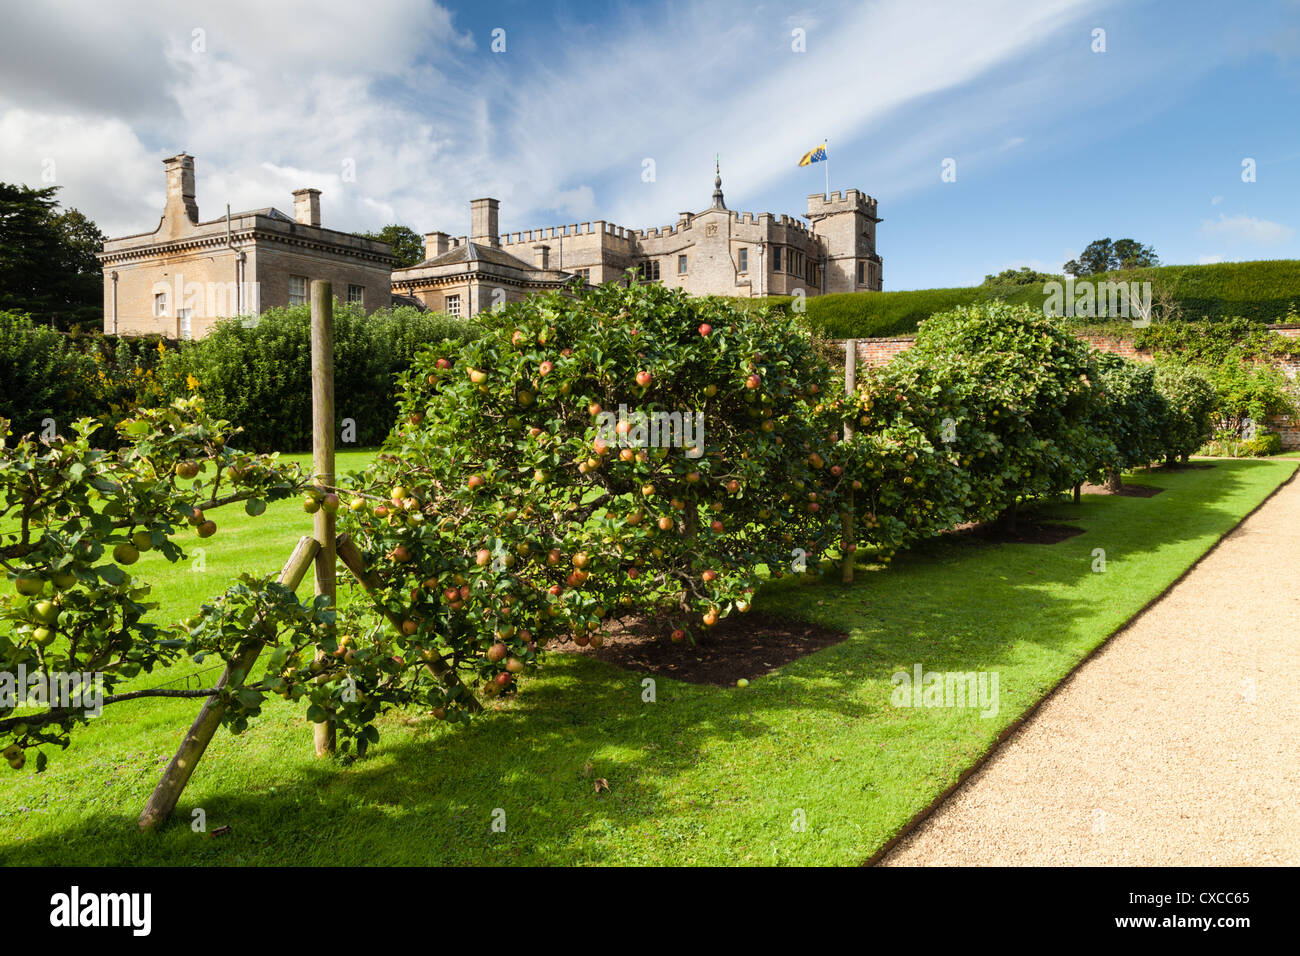 Ripened Apples growing on the espalier avenue of fruit trees within the walled garden of Rousham House in Oxfordshire, - Stock Image